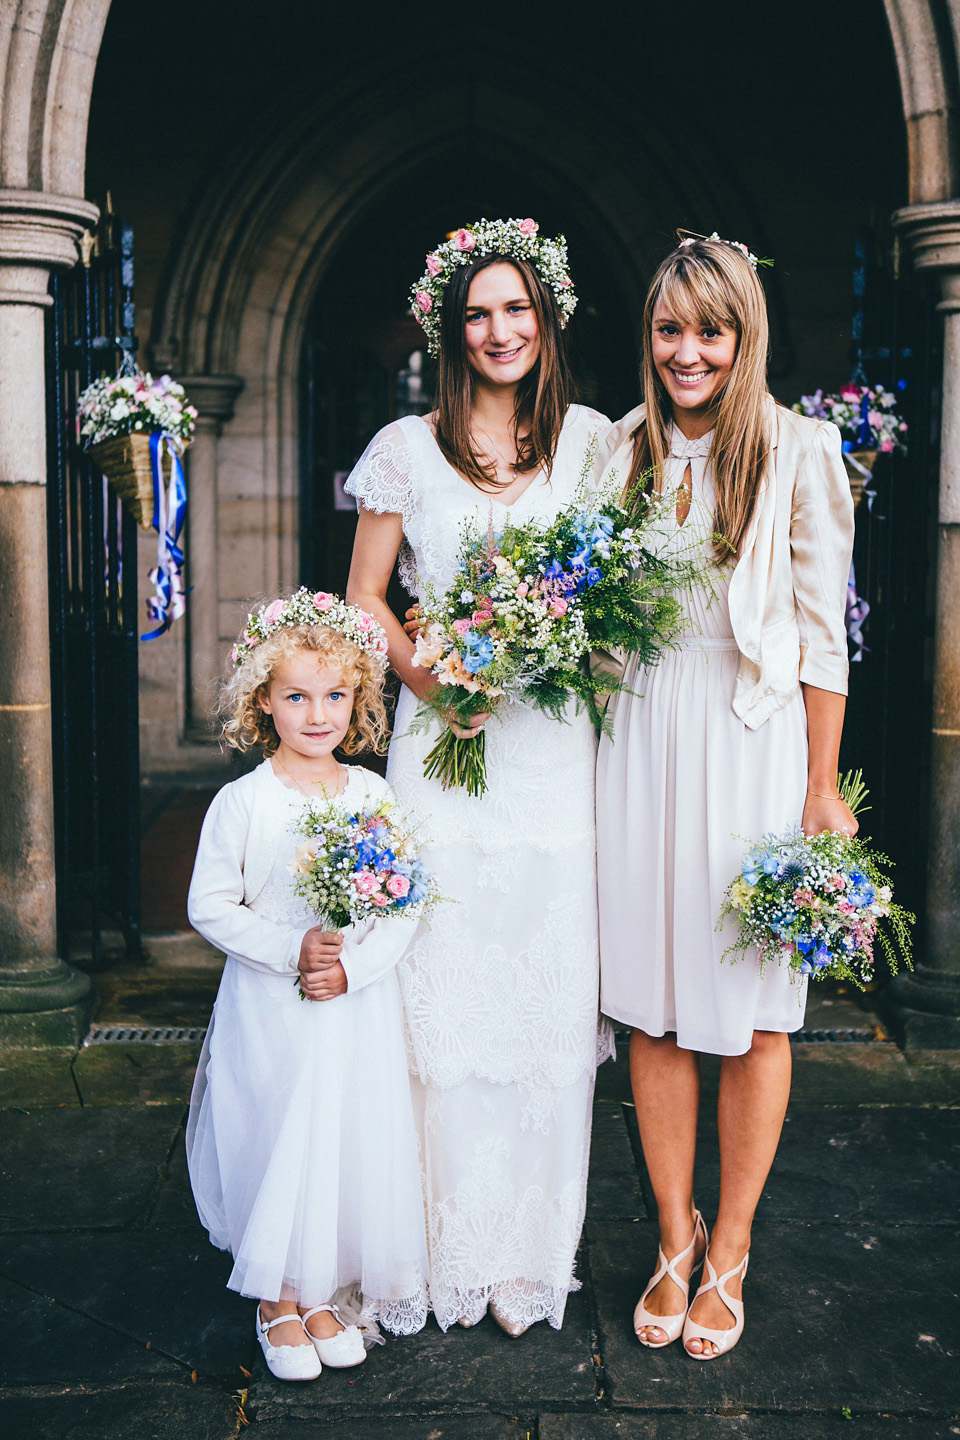 An Edwardian Inspired Gown and Floral Crown for a Relaxed City Wedding (Weddings )